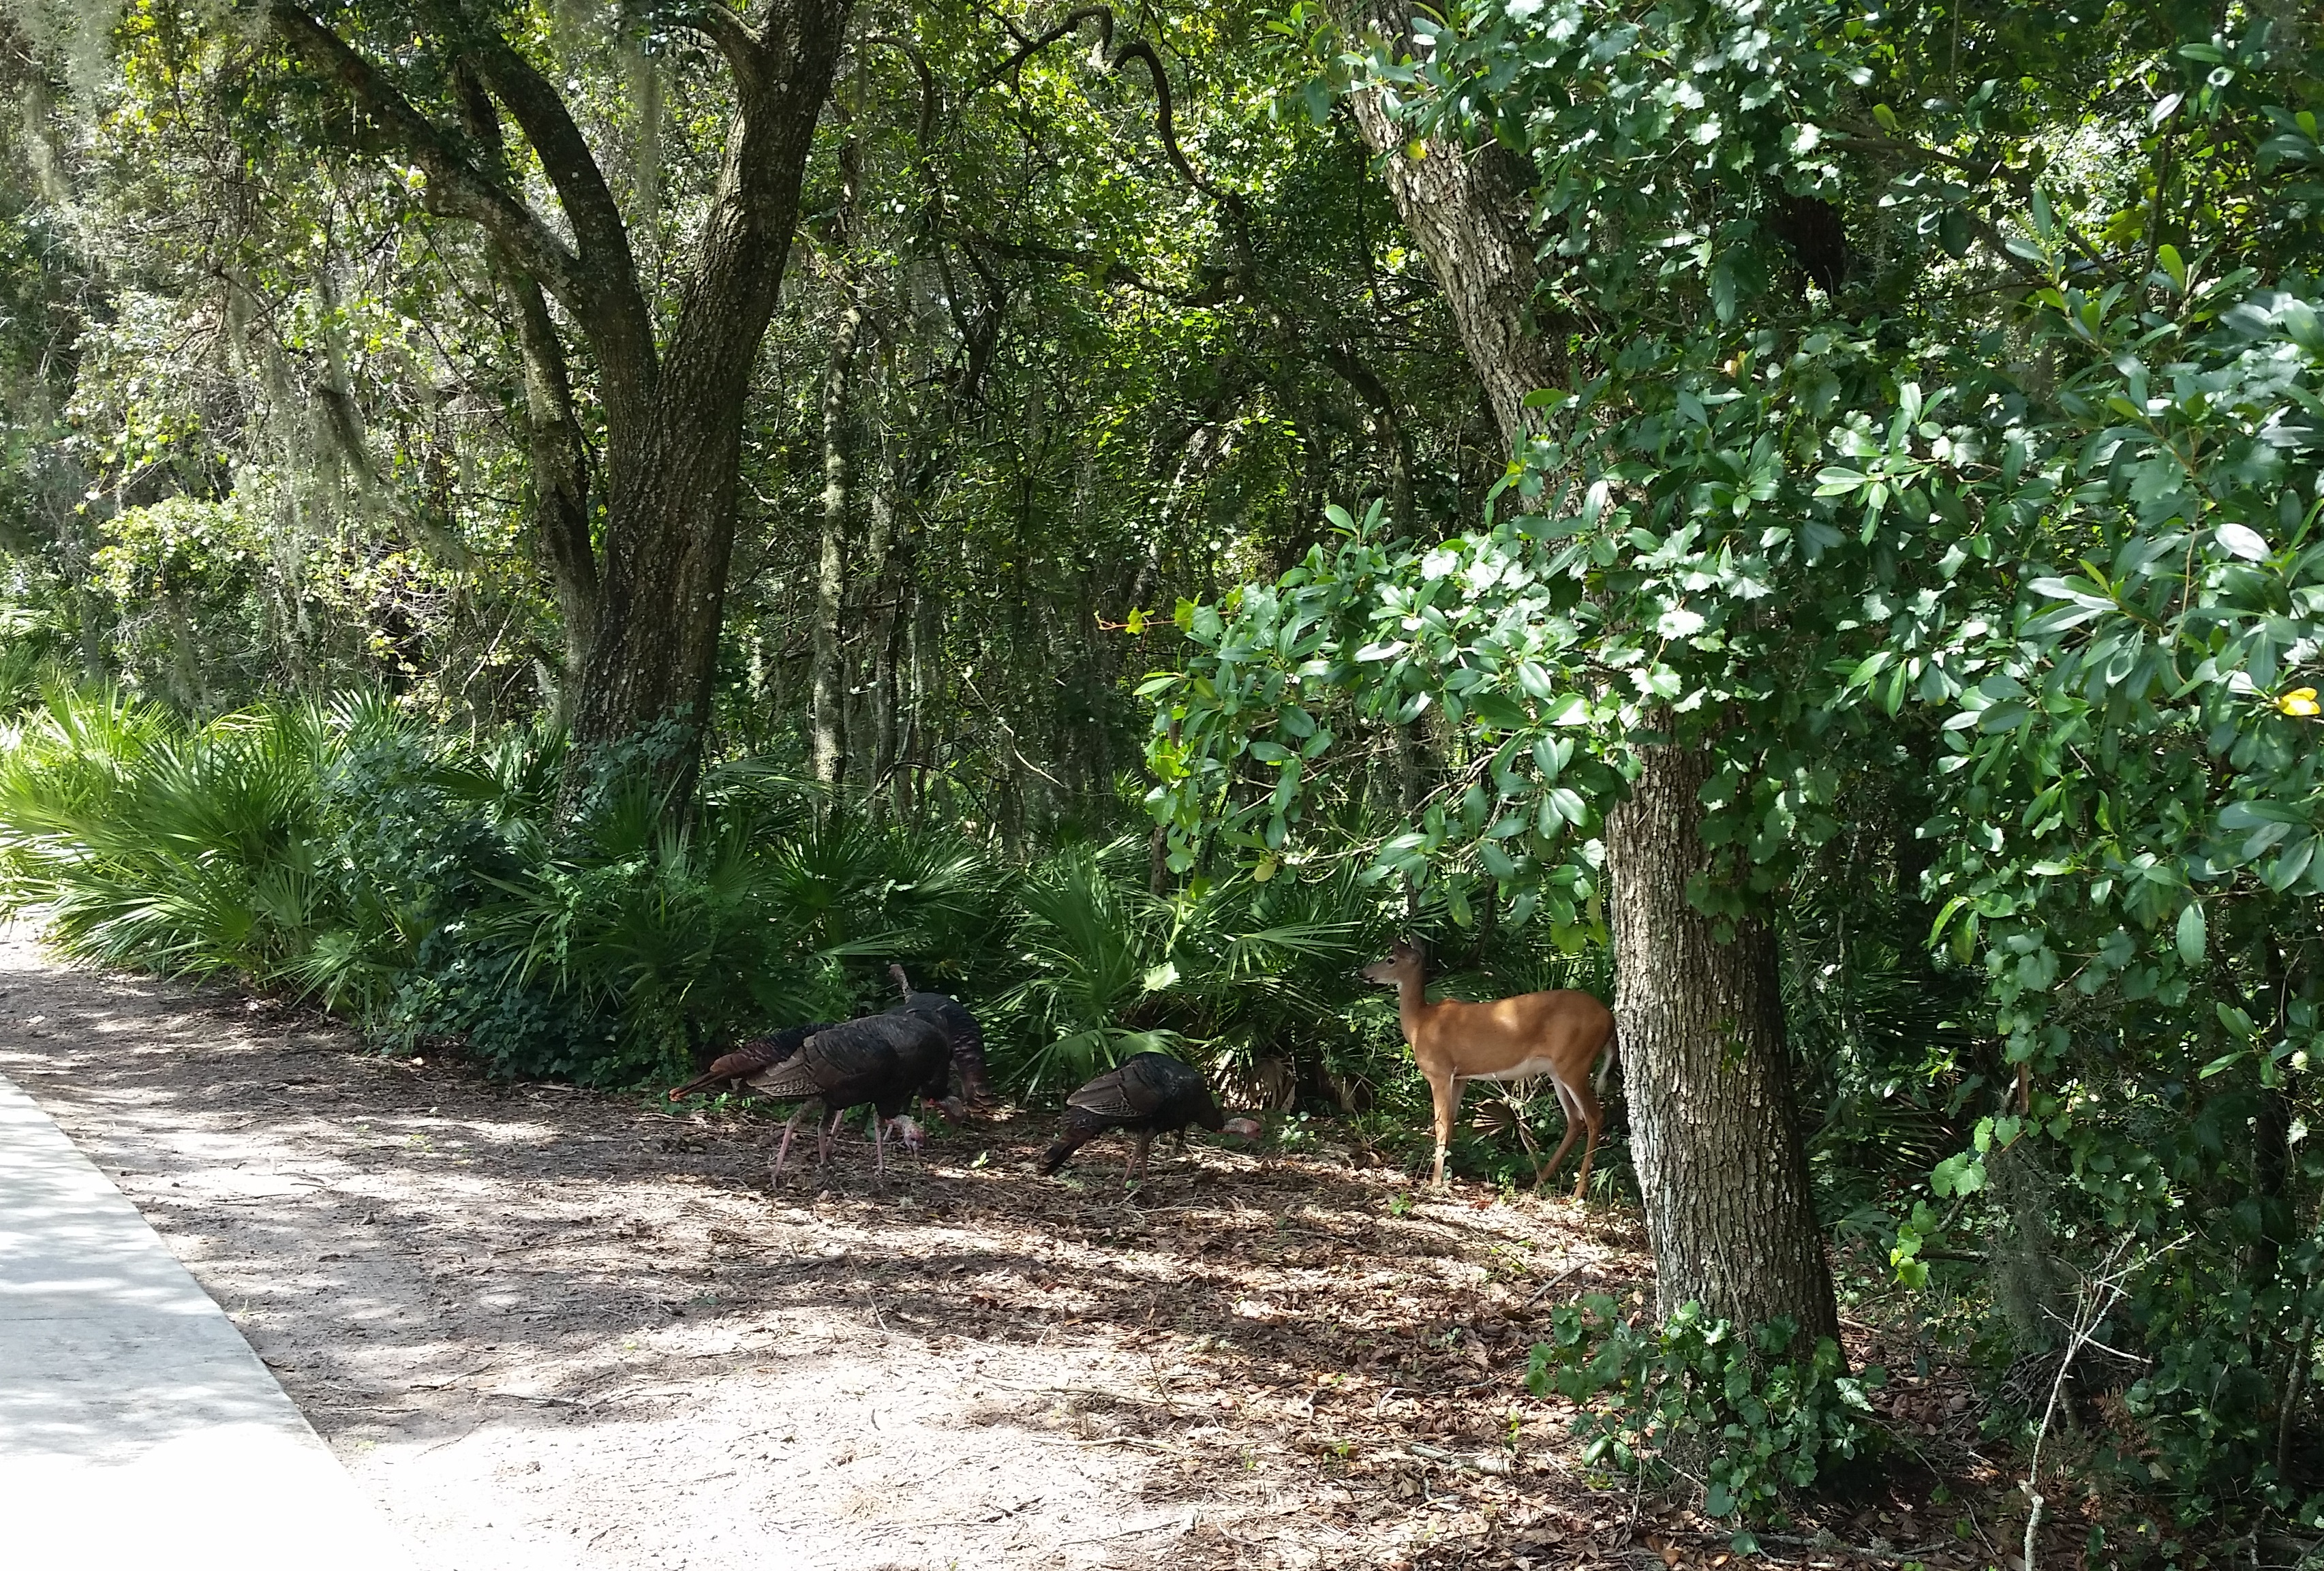 turkey-deer-nature-wildlife-outdoors-davenport-florida